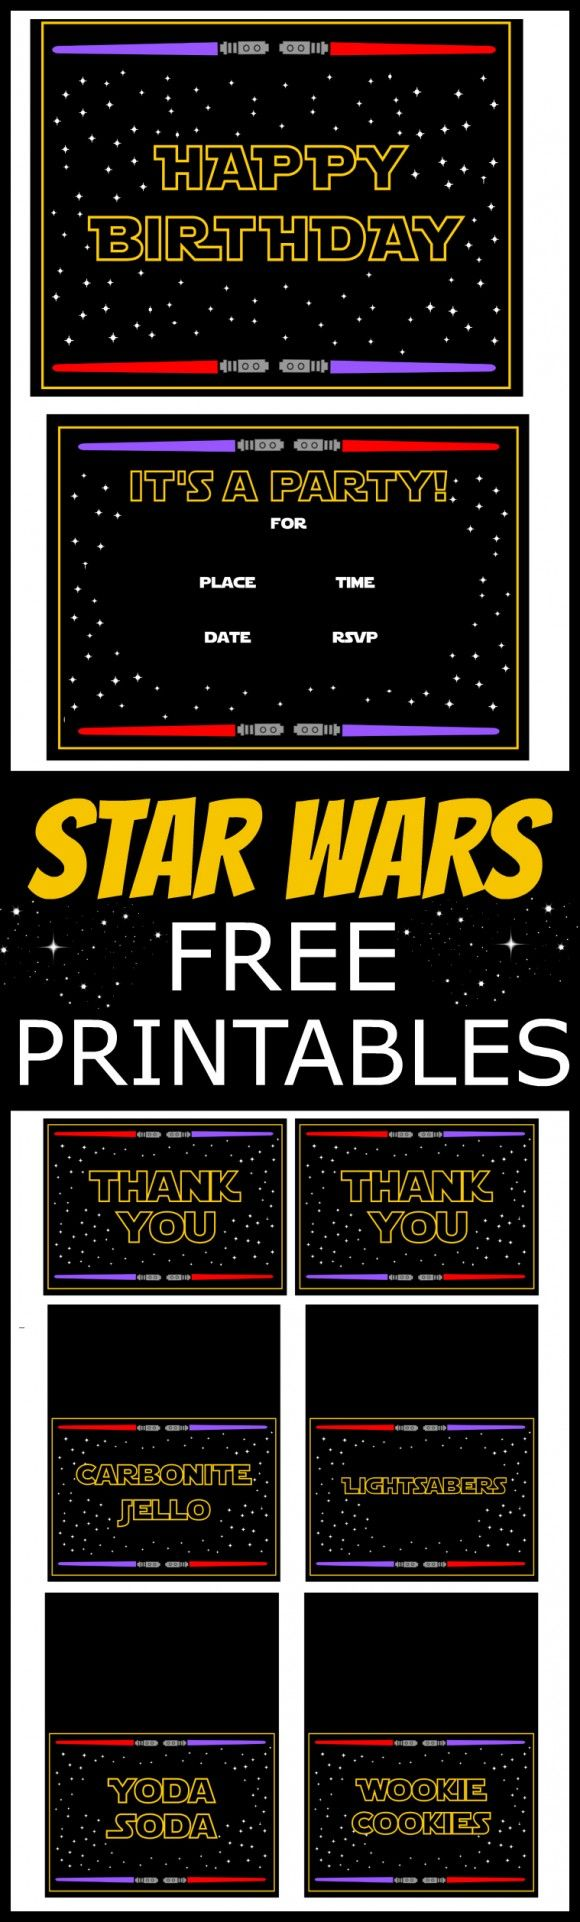 Star Wars Free Printables including invitations, a welcome sign, cupcake toppers, themed food cards and thank you cards! For more Star Wars party ideas head to CatchMyParty.com